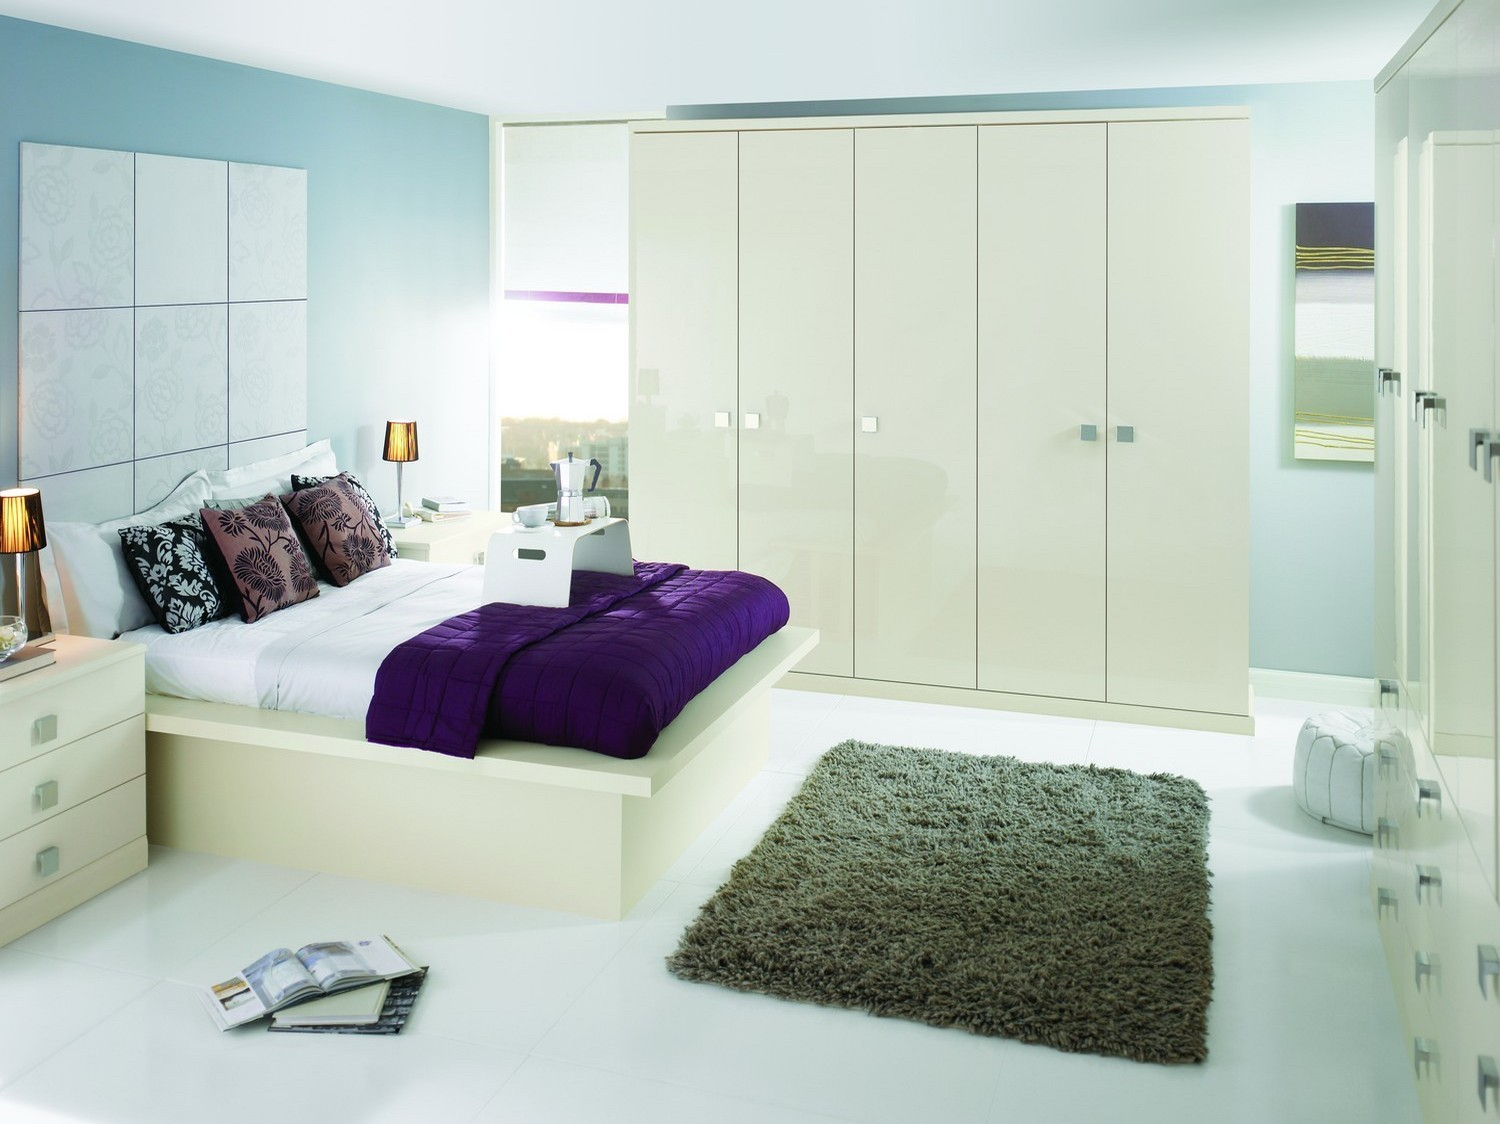 A modern gloss fitted bedroom furniture set finished in Oyster gloss with a modern square chrome handle. The bedroom set features a range of wardrobes and drawers, bed side cabinets and matching bed. This bedroom has added plenty of storage space to this medium sized bedroom, giving plenty of space for the home owners clothes and belongings.